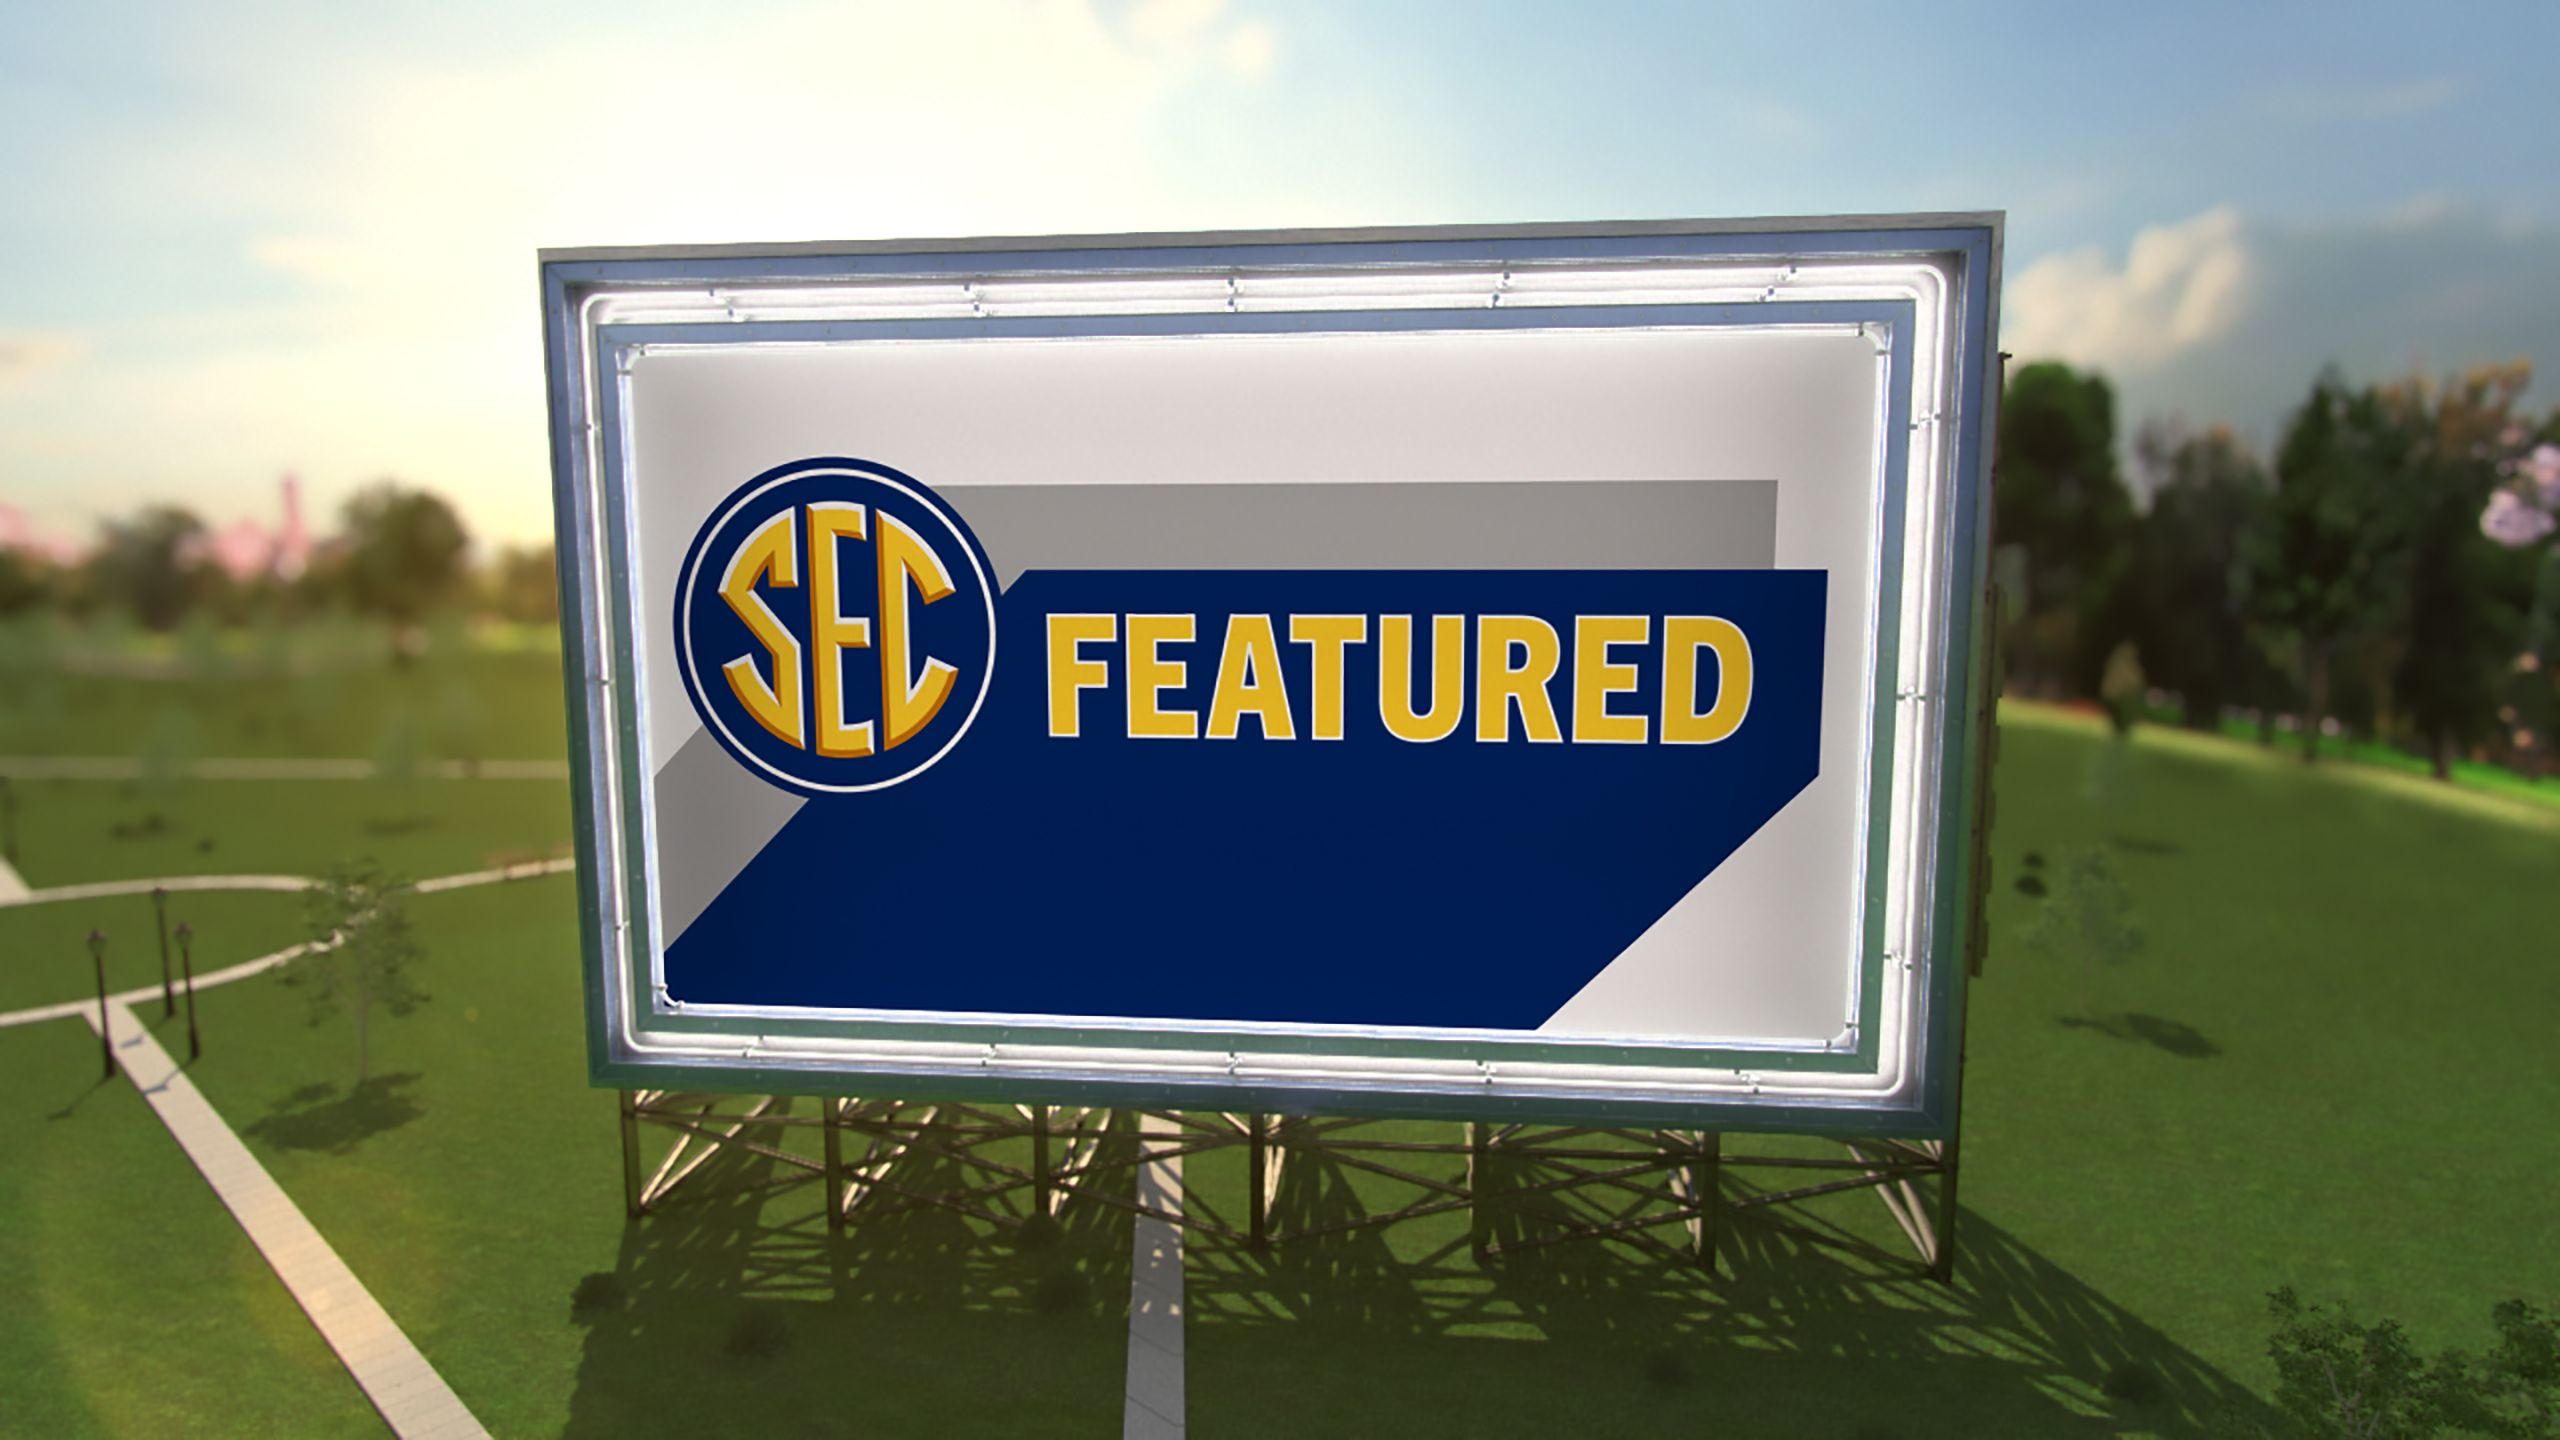 SEC Featured Presented by Belk